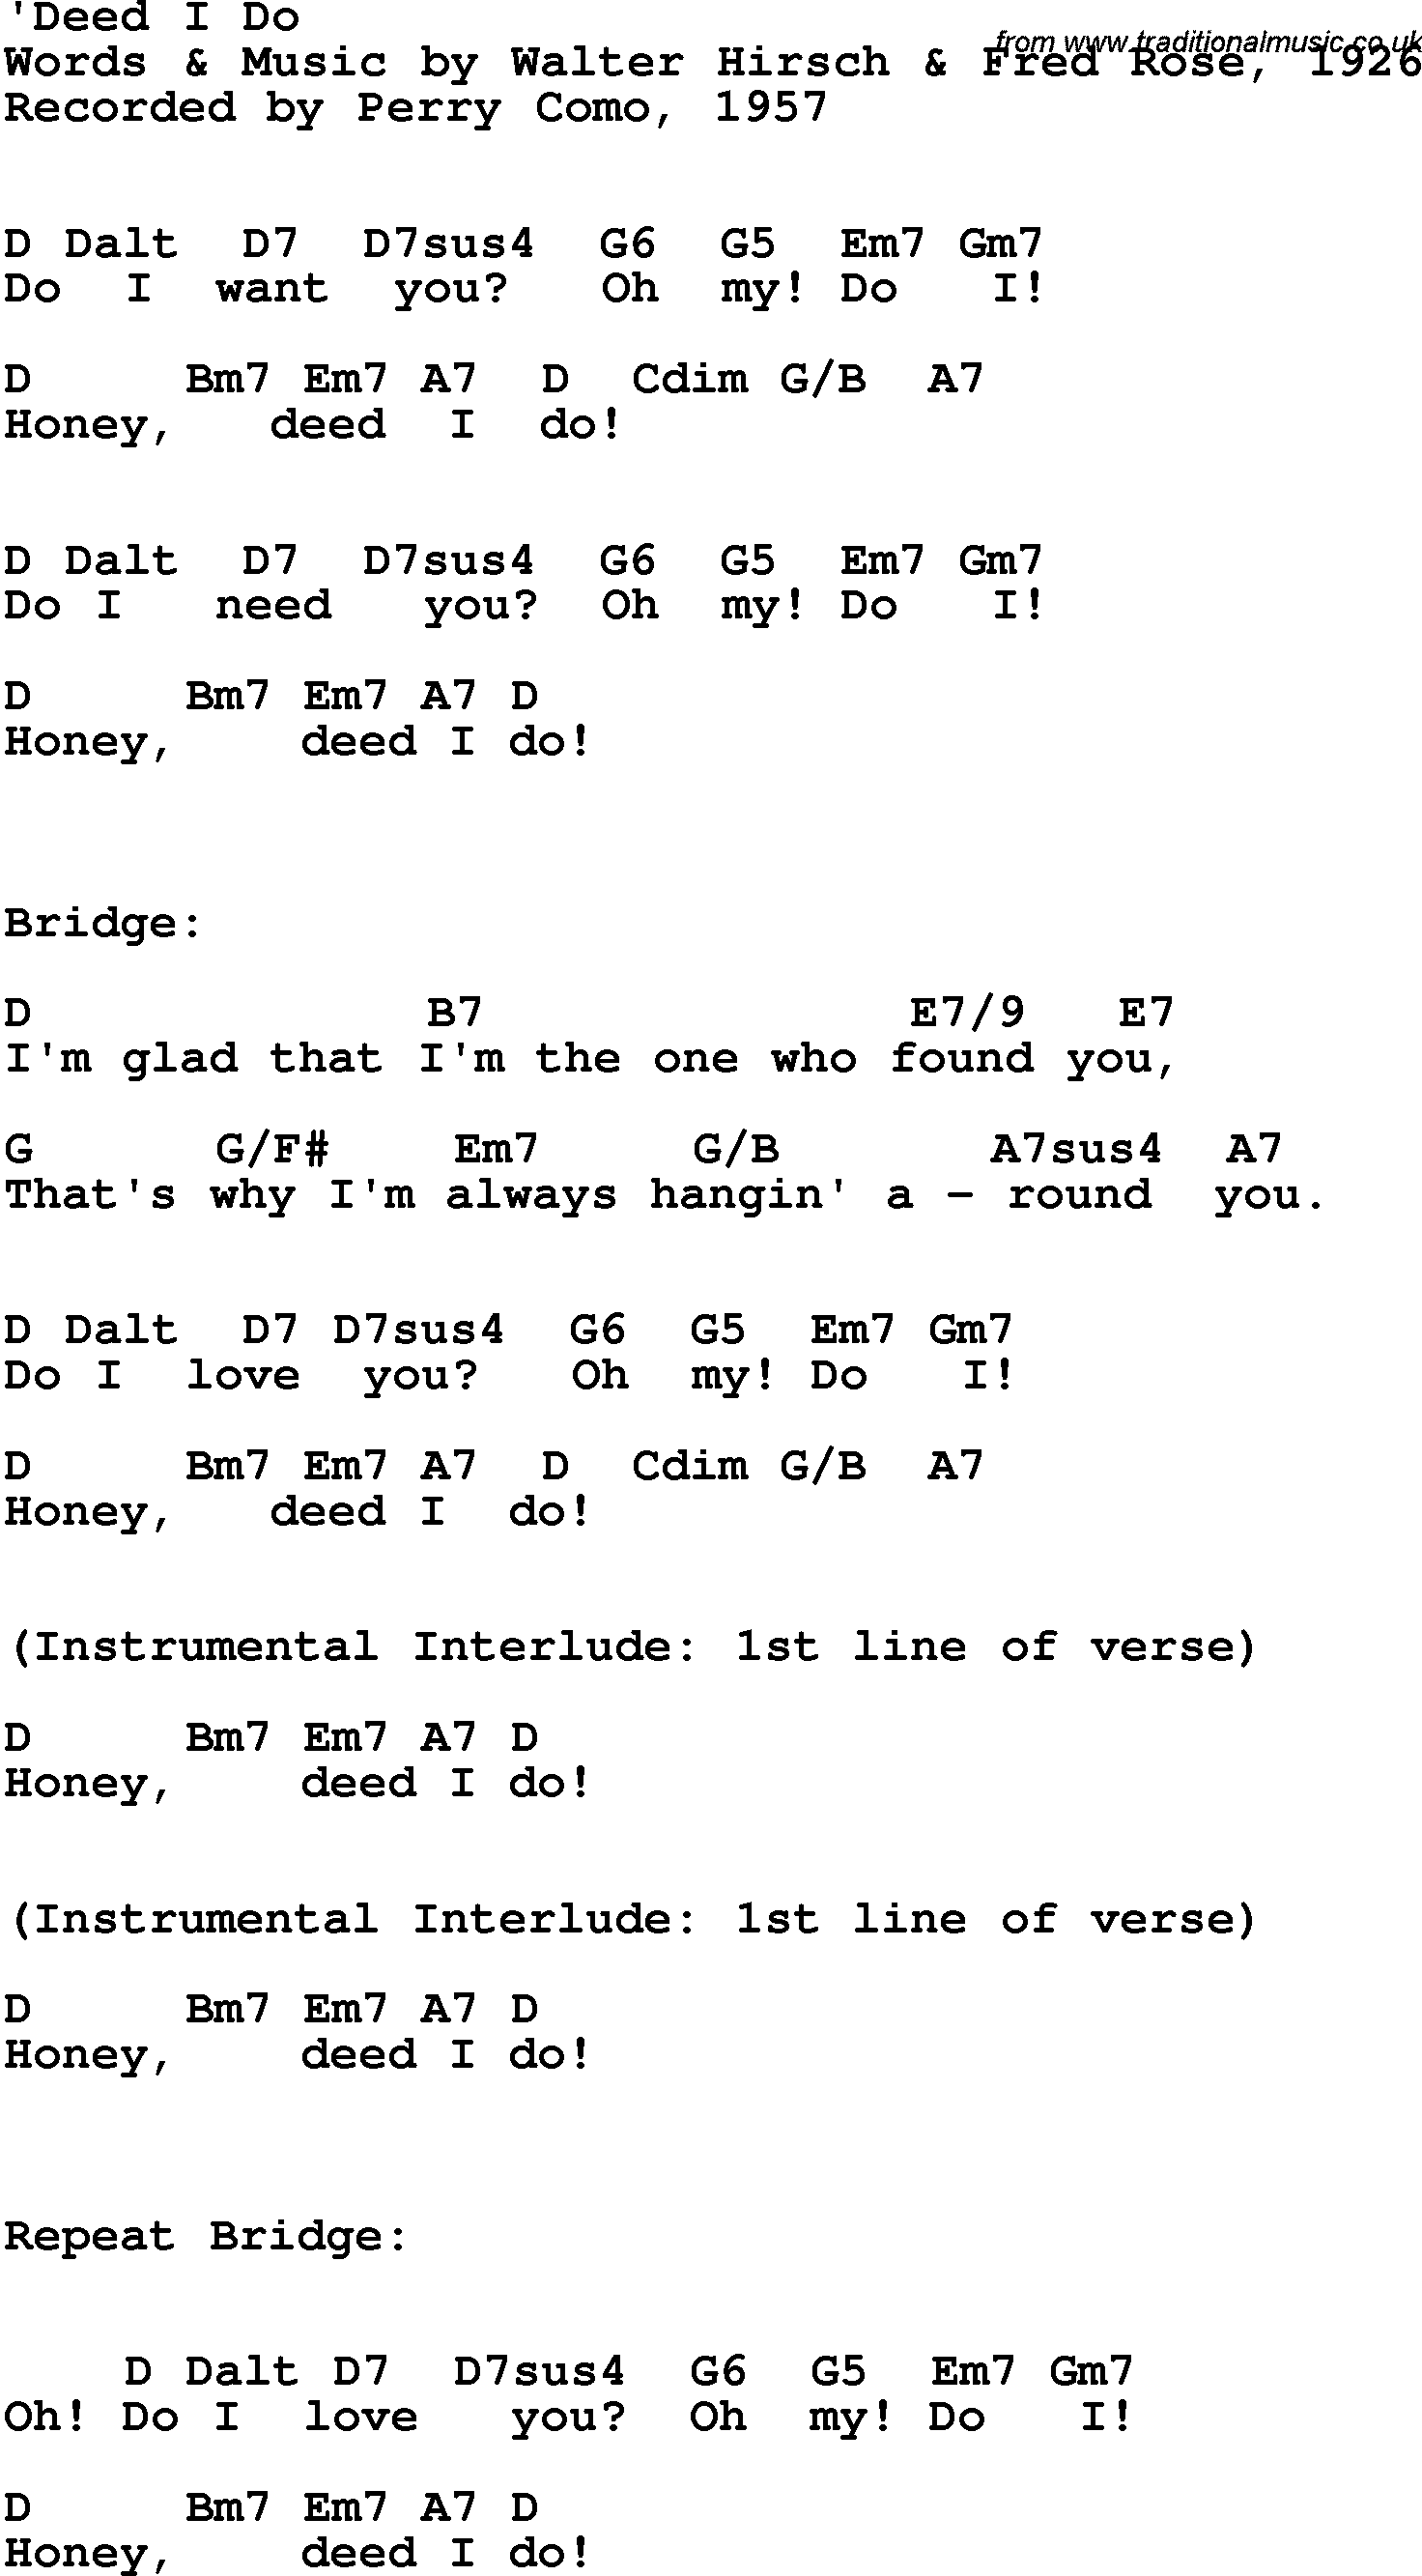 Song Lyrics With Guitar Chords For Deed I Do Perry Como 1957